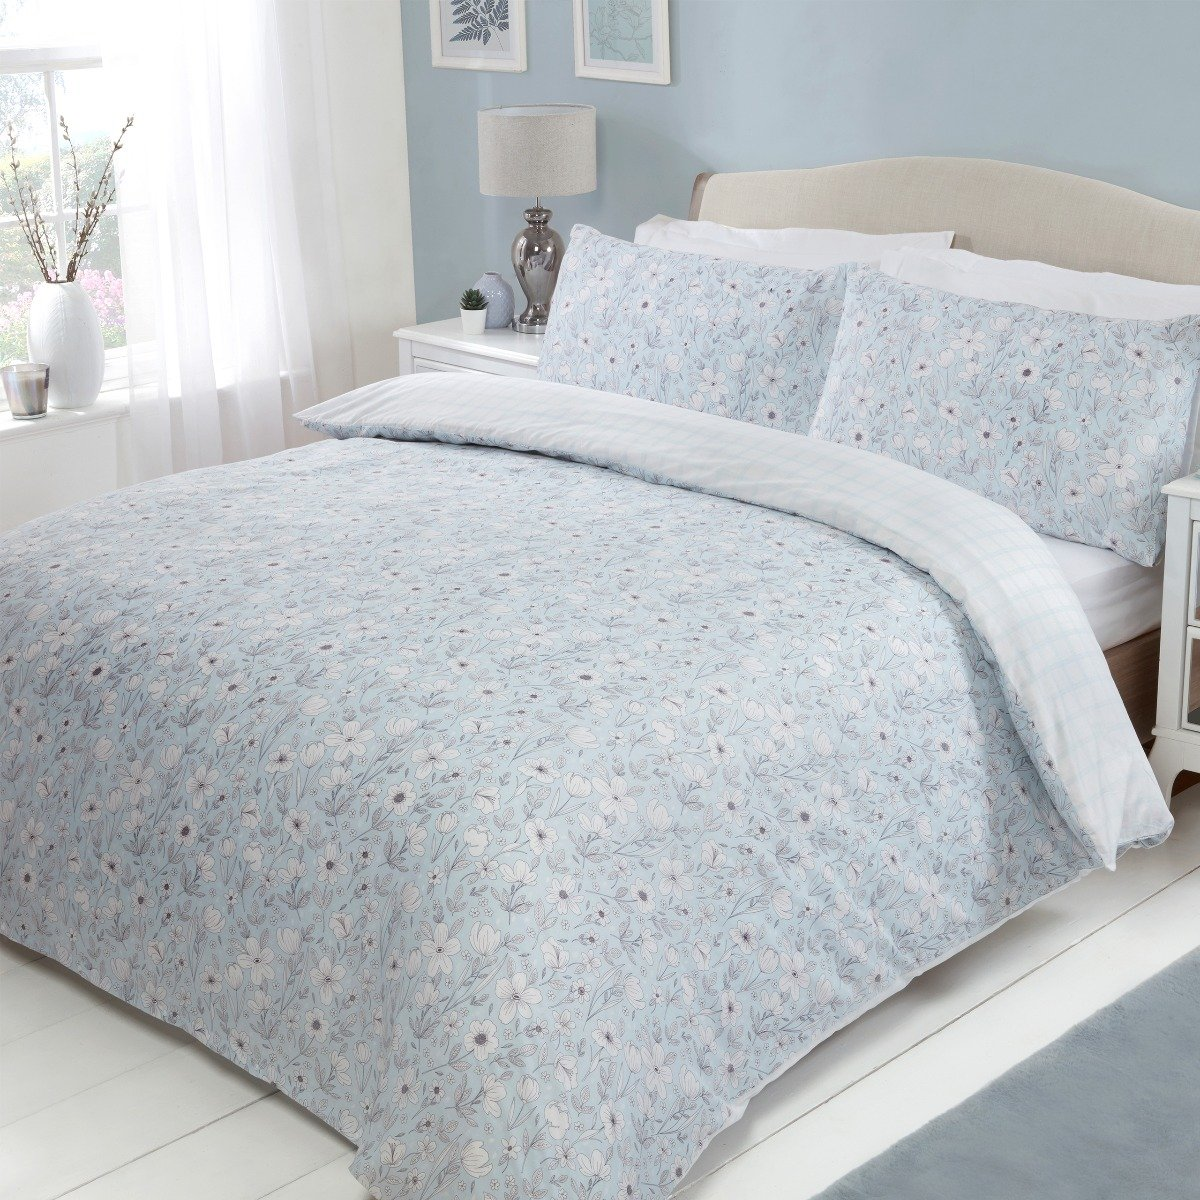 Scattered Sketch Floral Bedding - Reversible Duvet Cover and Pillowcase Set